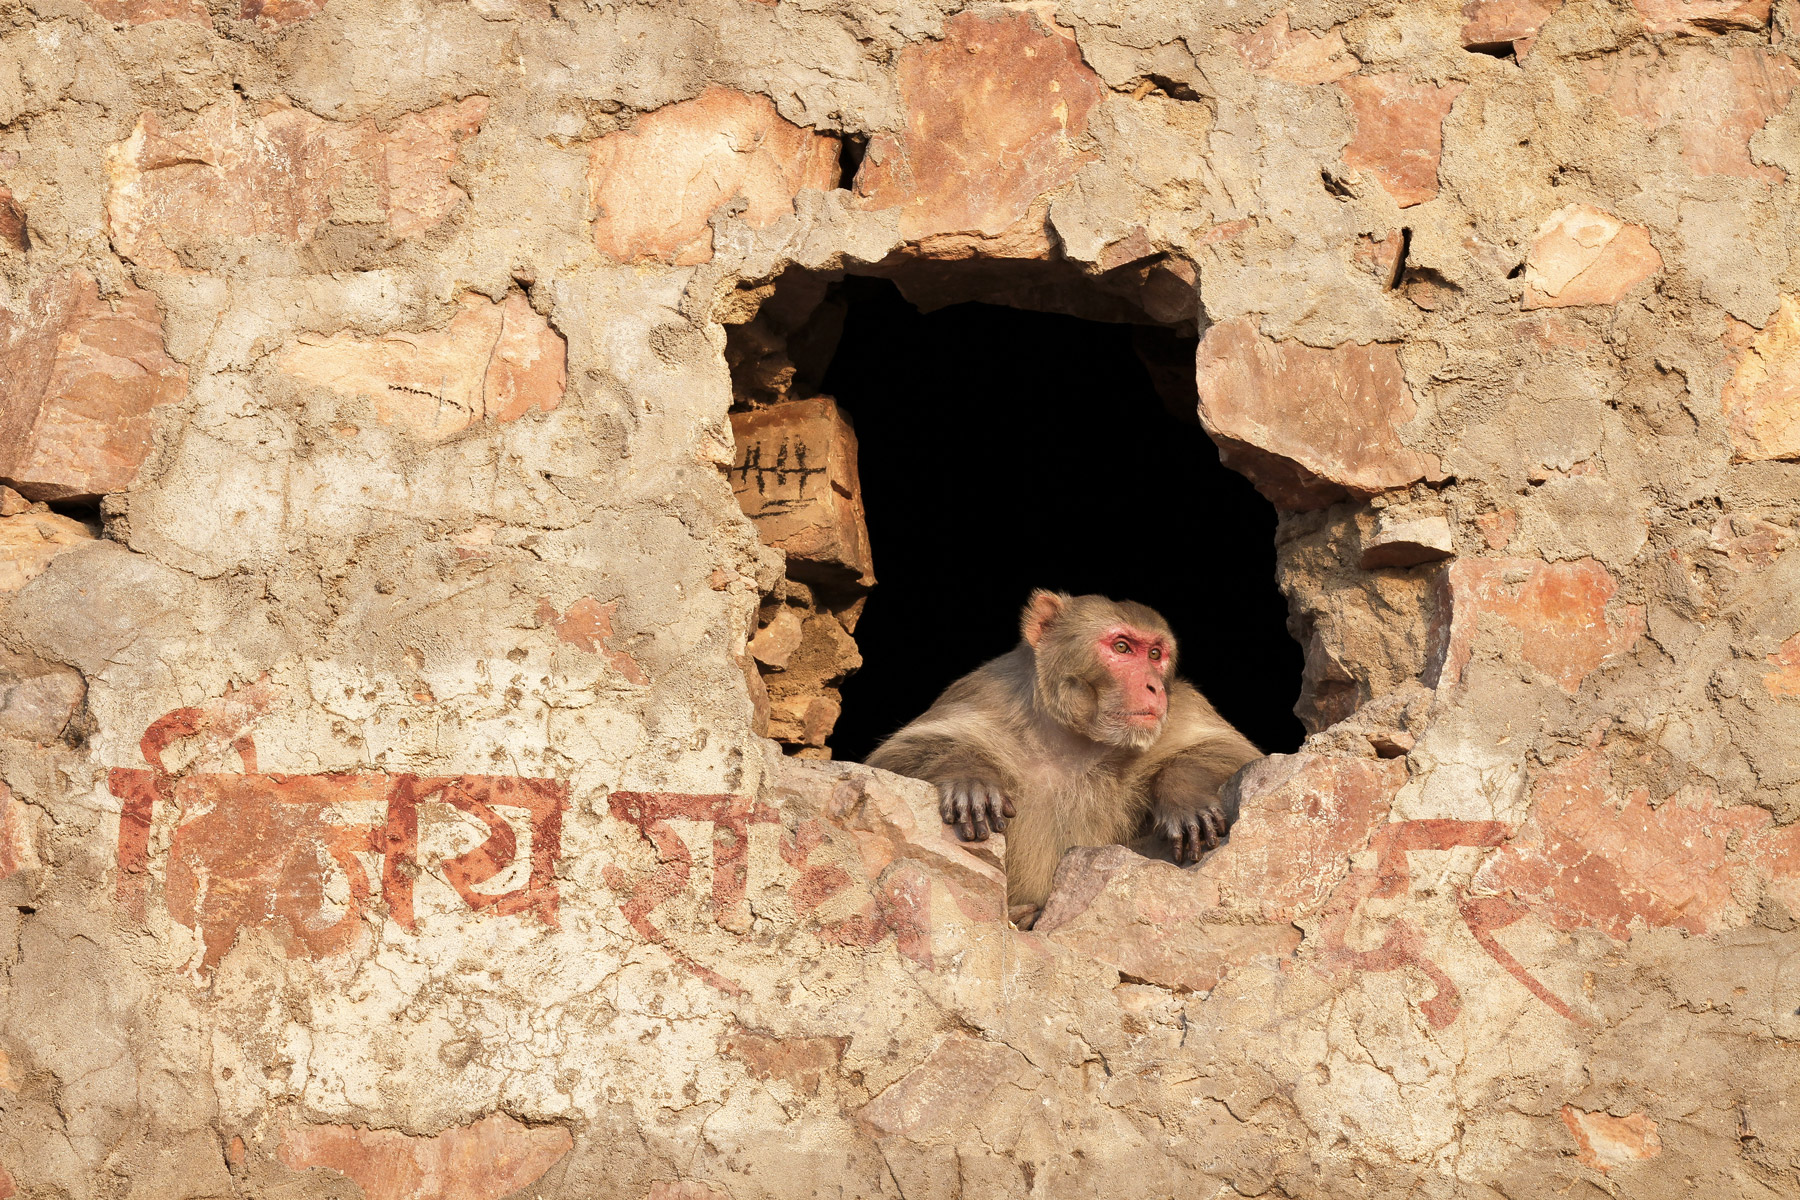 A rhesus macaque looking out from a hole in a wall